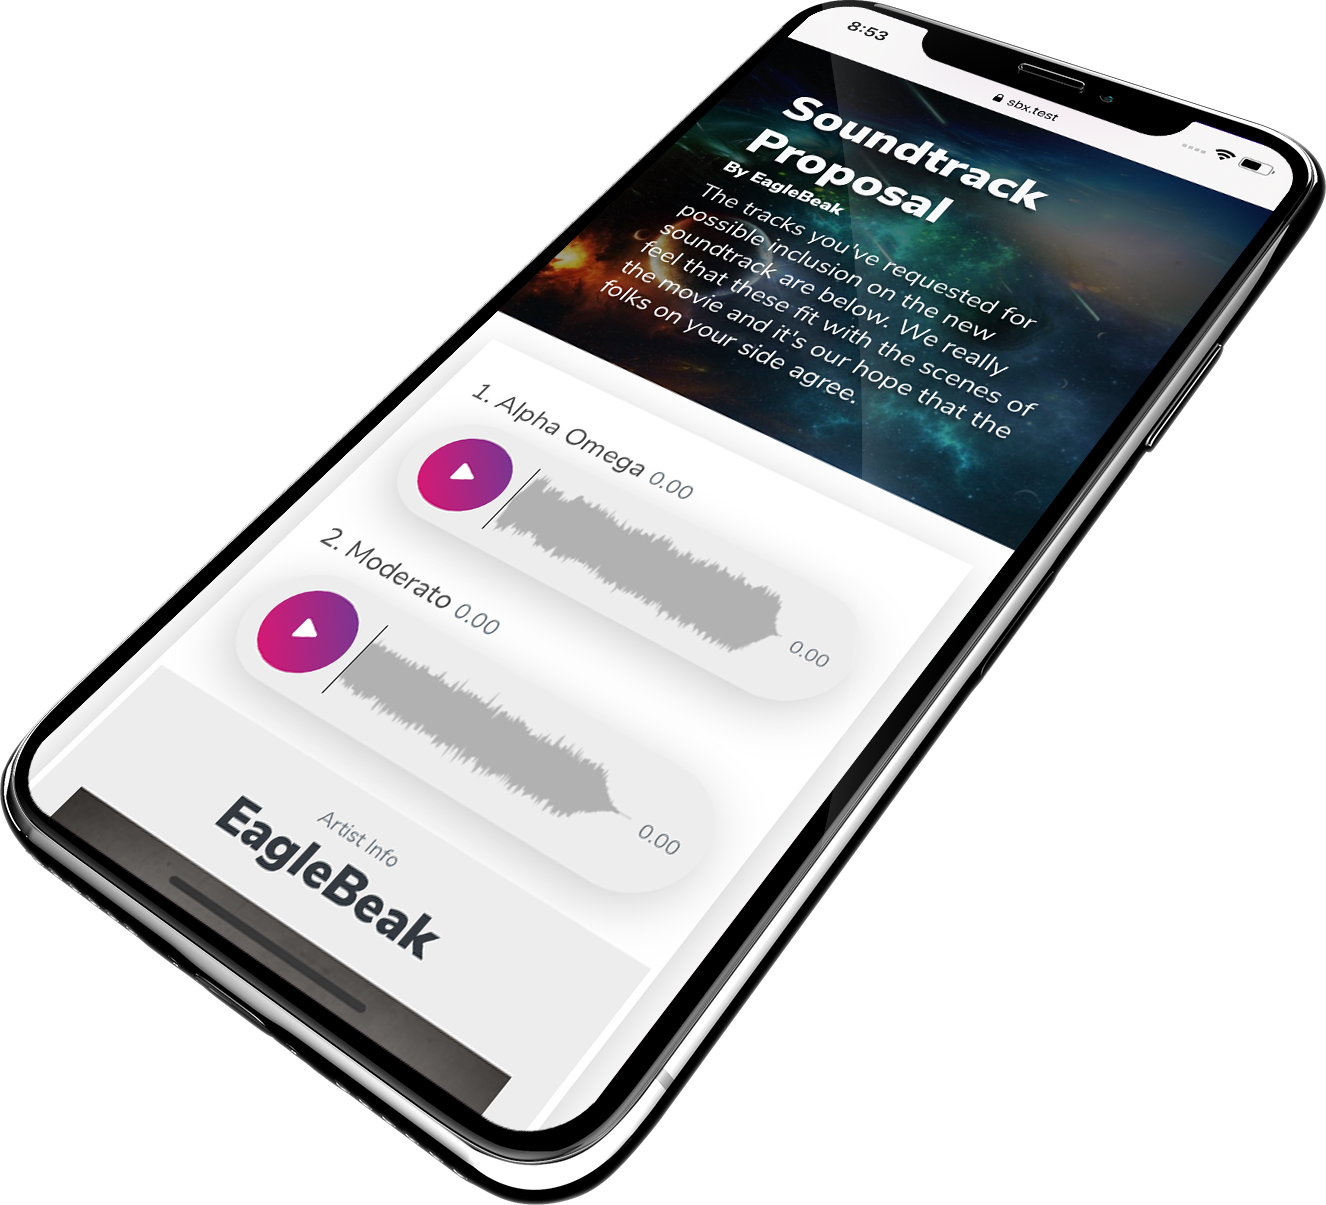 SongBox Mobile Screenshot - Notifications